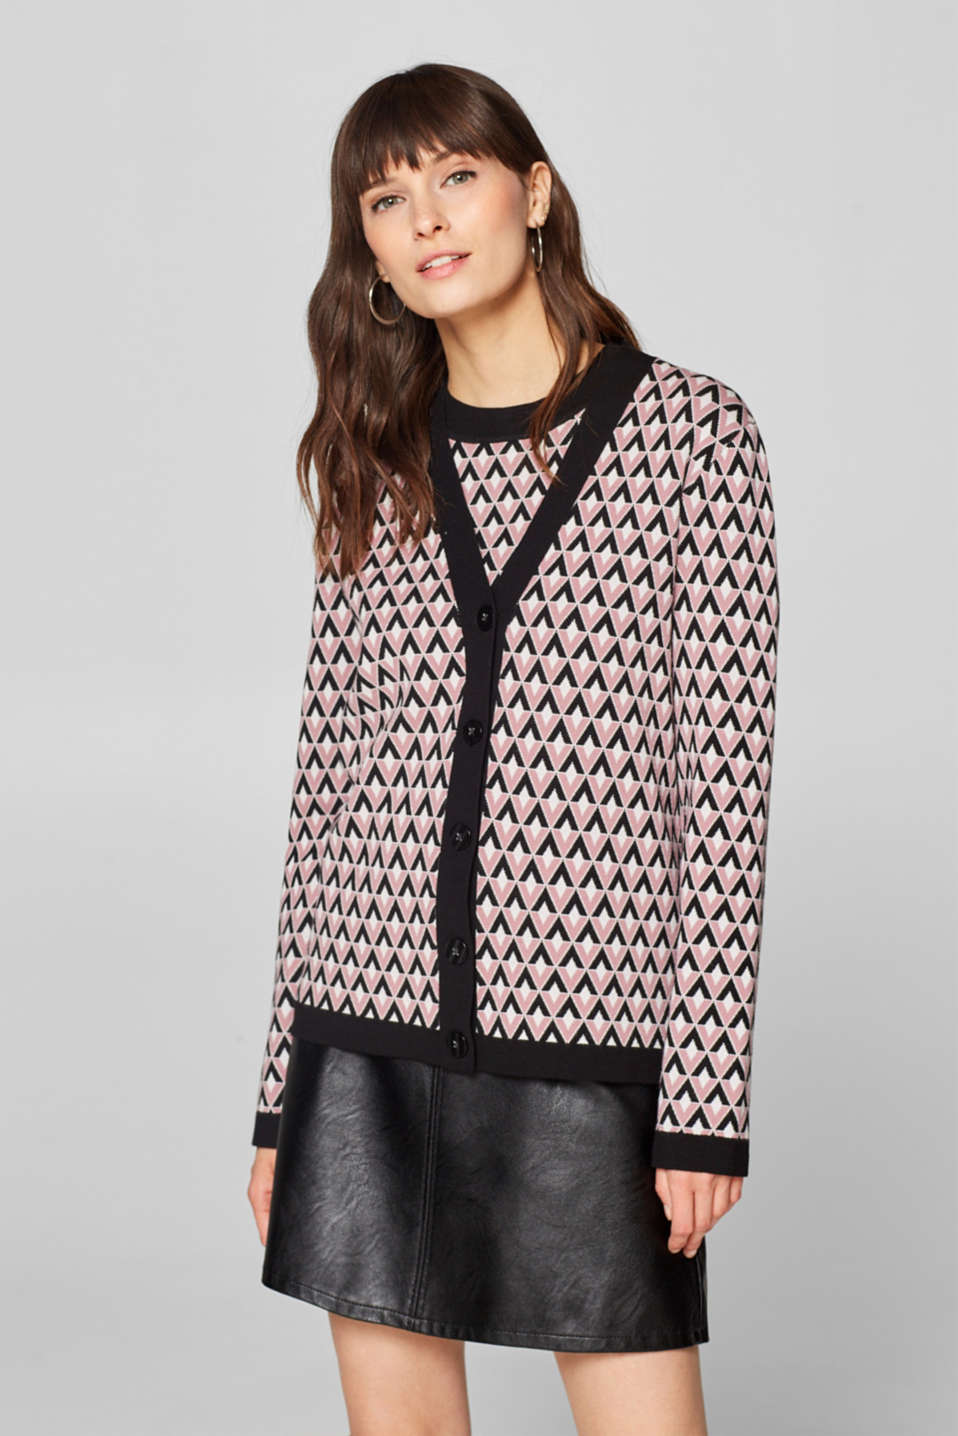 Esprit - Compact jersey cardigan with a graphic pattern